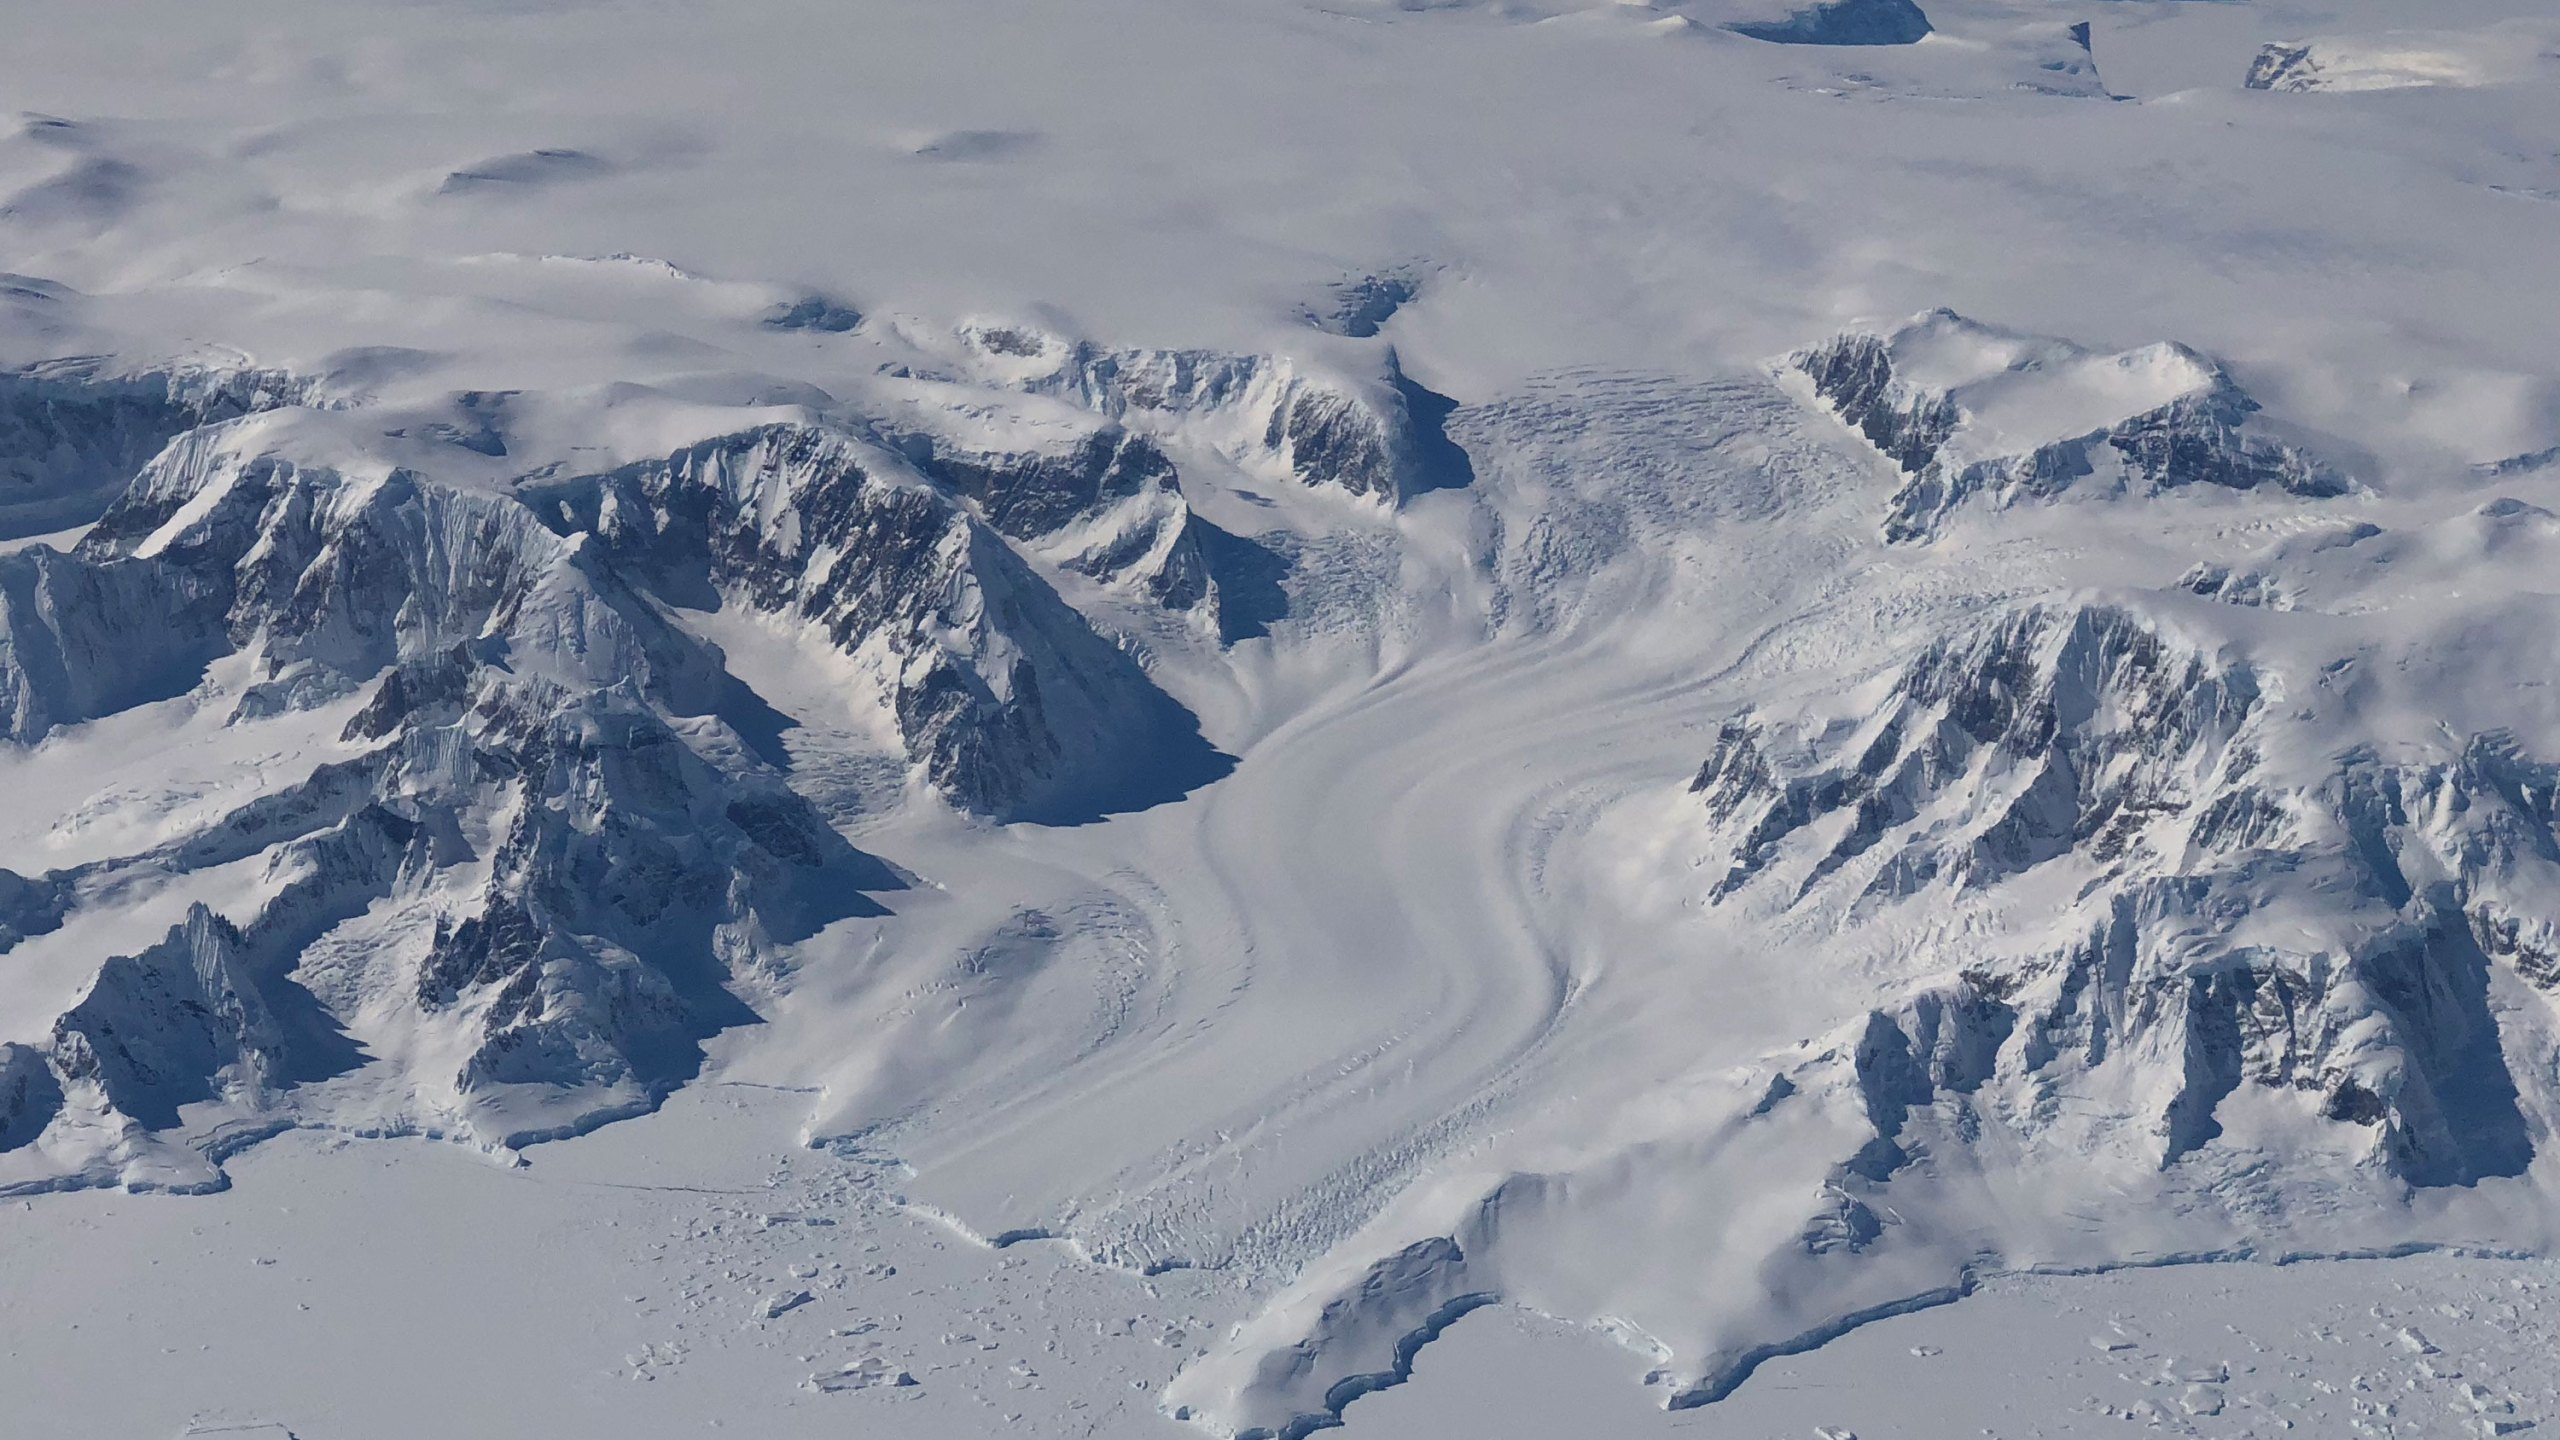 Using the most advanced Earth-observing laser instrument NASA has ever flown in space, scientists have made detailed measurements of how the elevation of the ice sheets in Greenland and Antarctic have changed over 16 years. (K. Ramsayer/NASA via CNN)